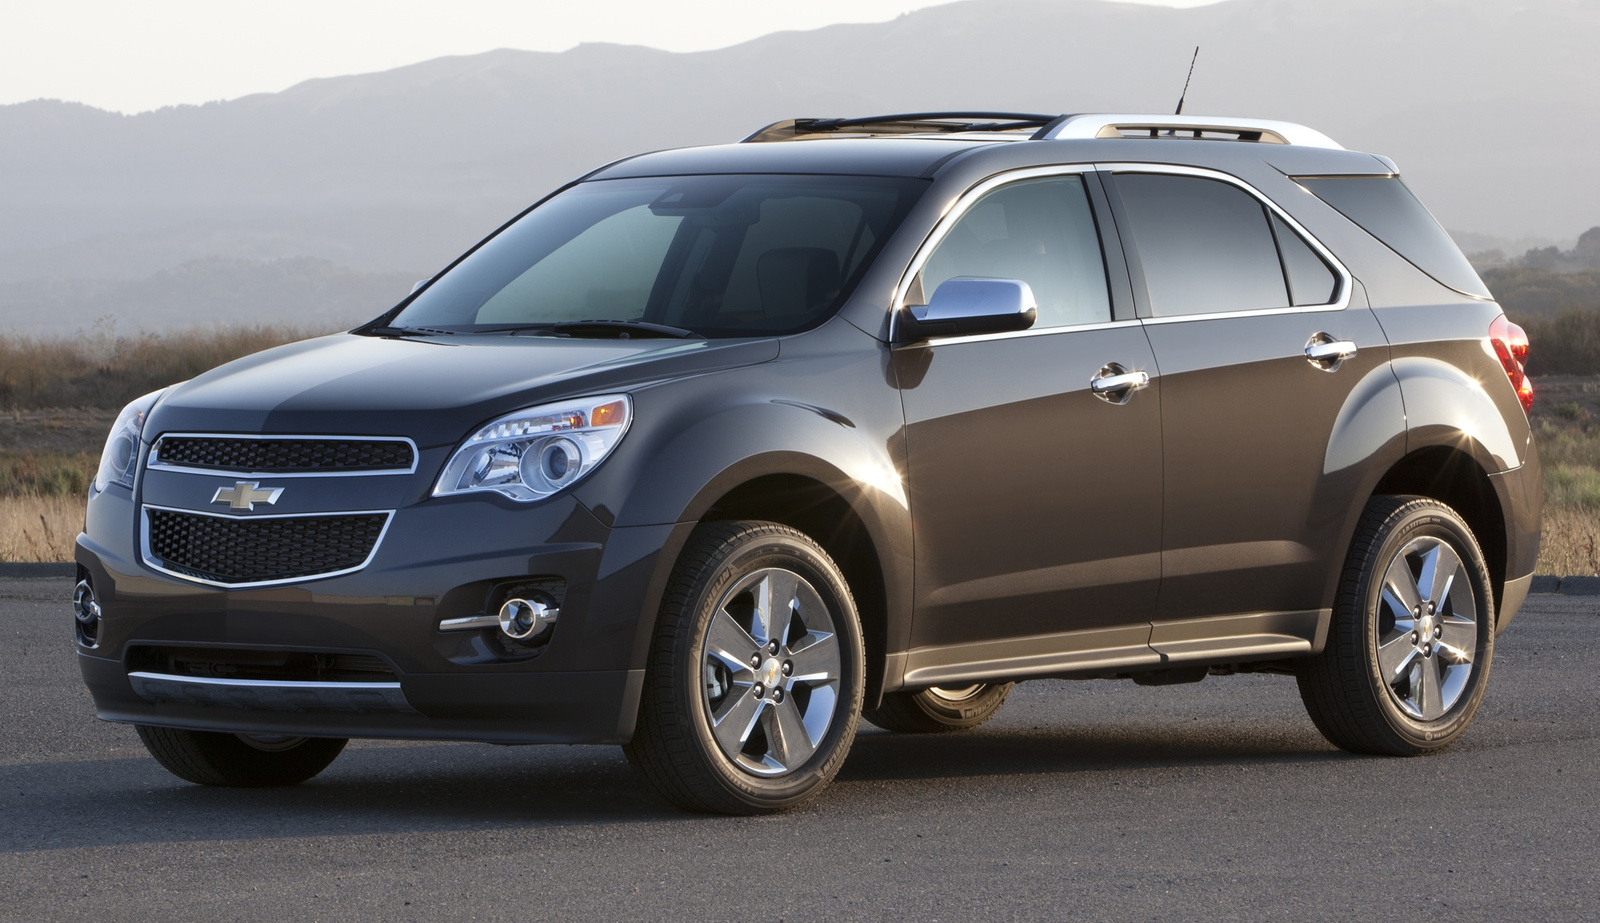 Cars chevrolet equinox #5